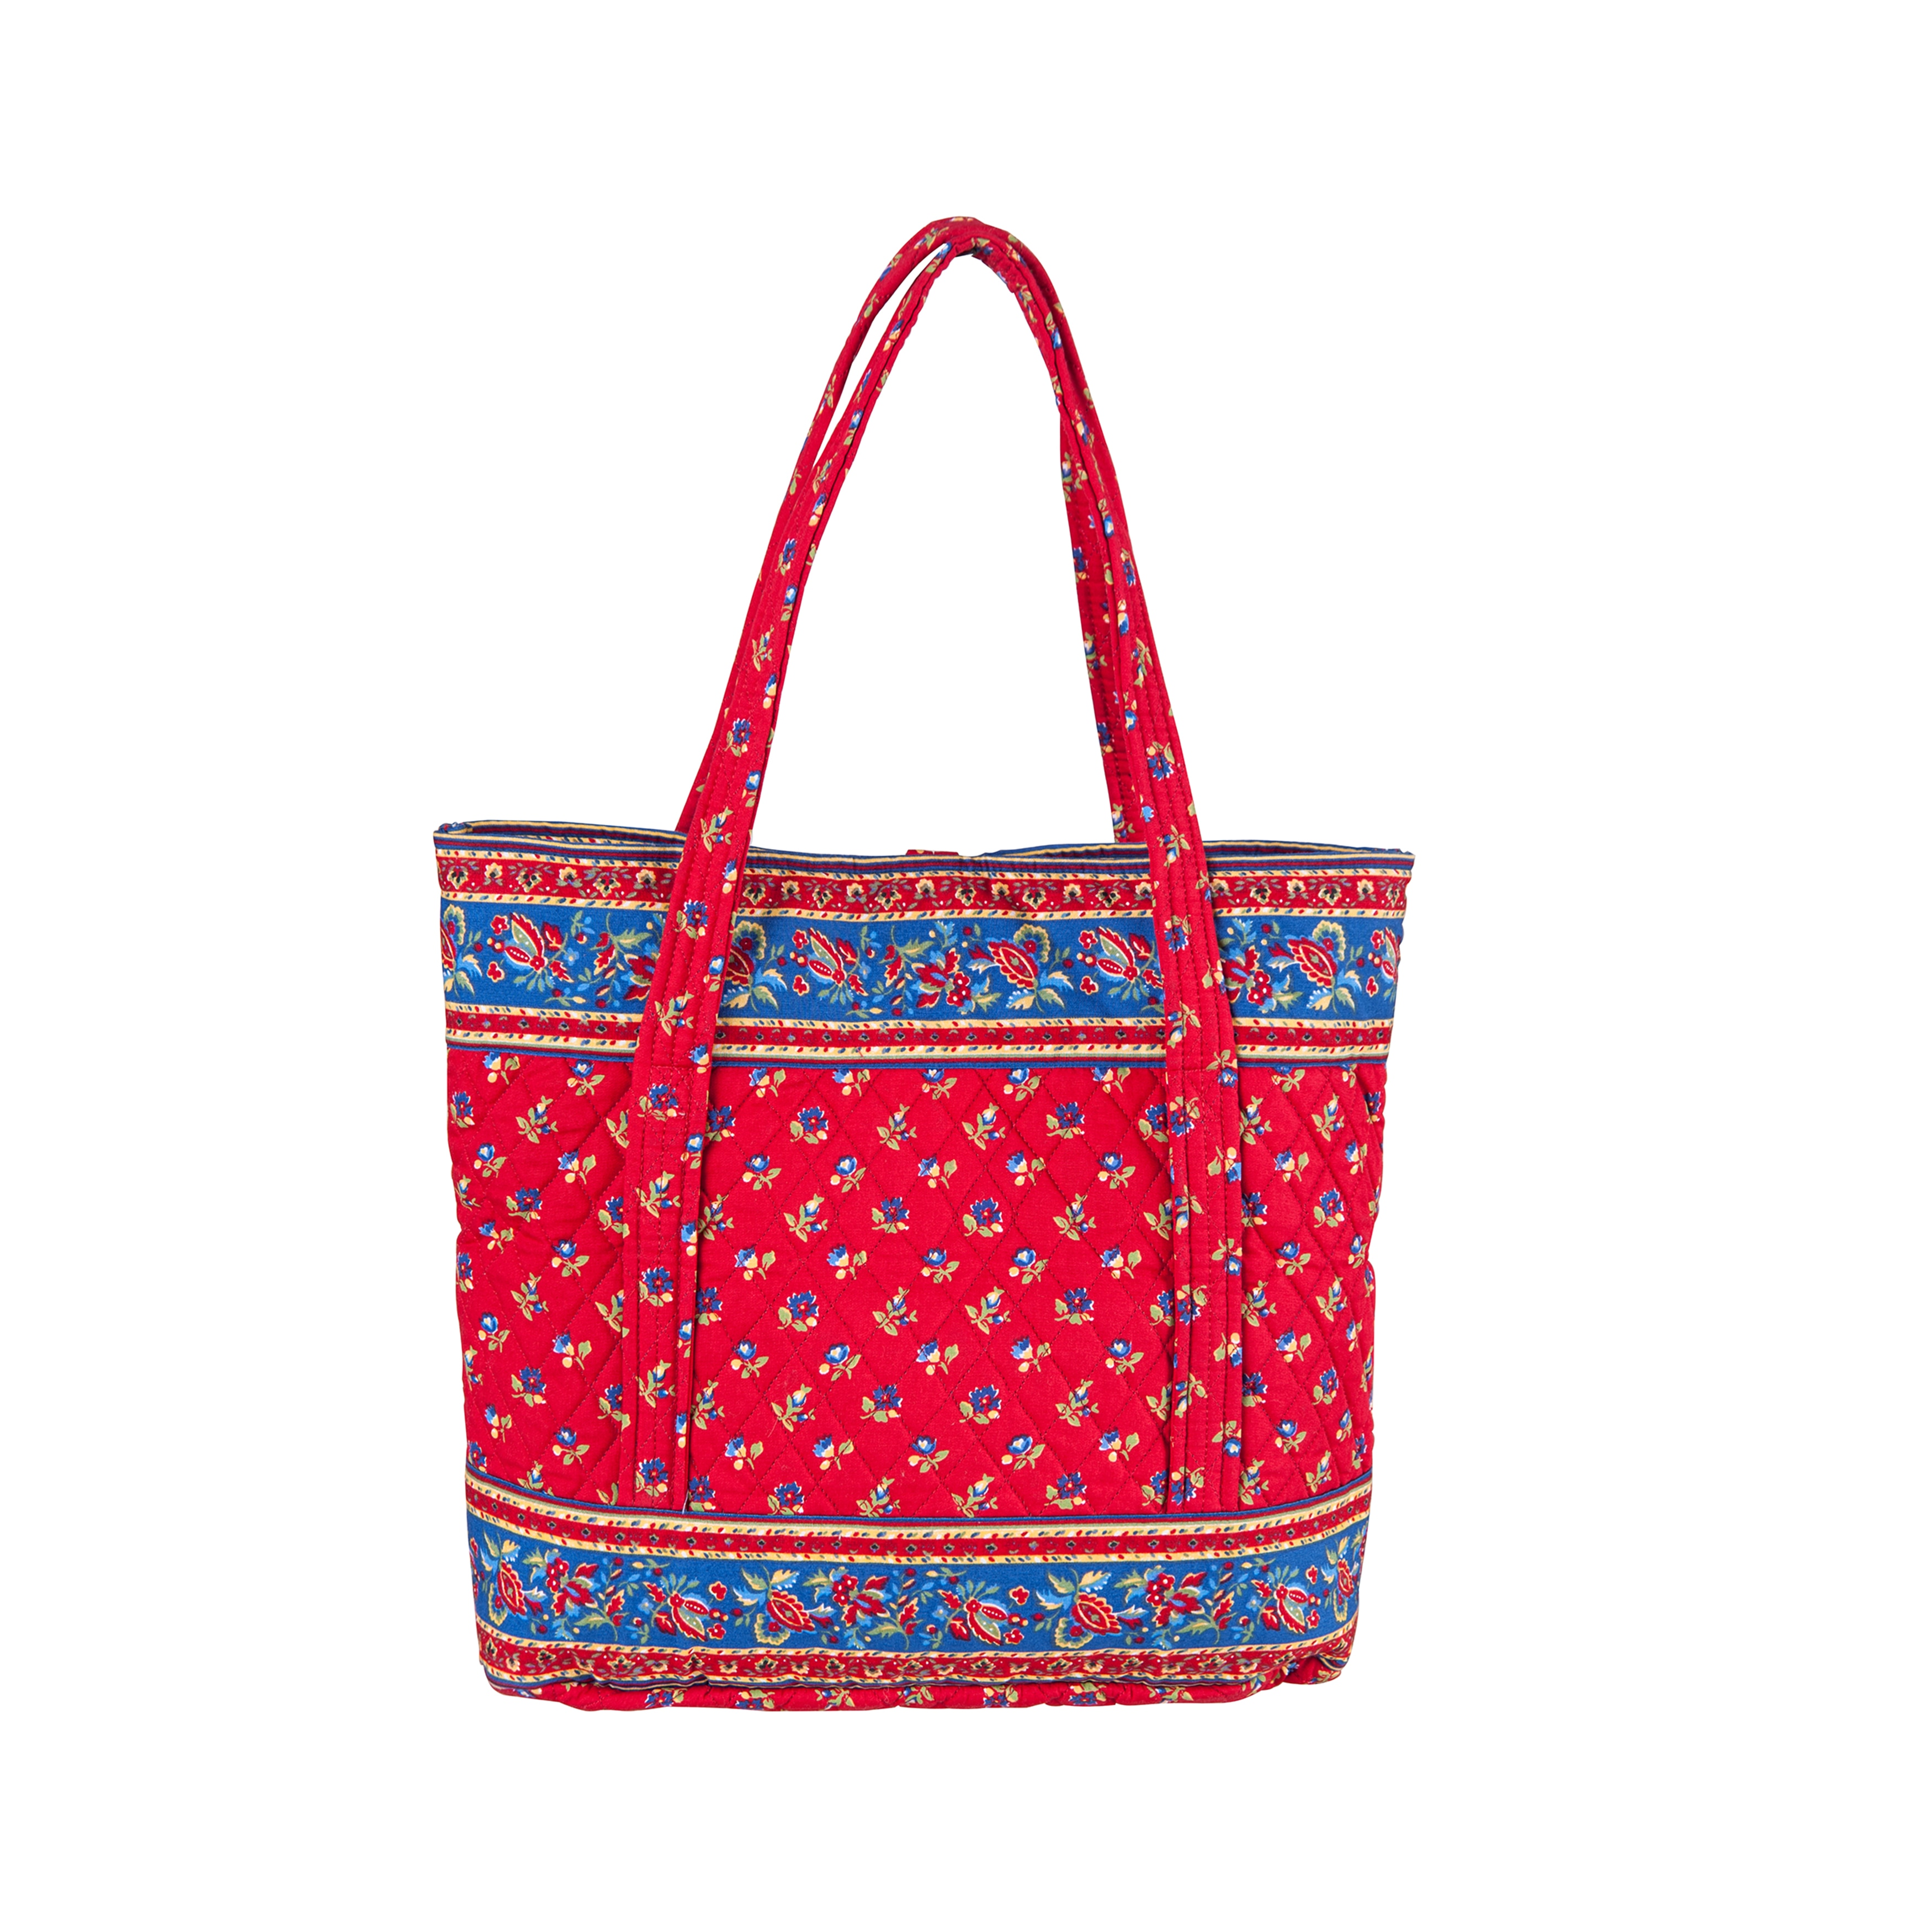 mango handbags quilted macedonia quilt bag women woman bags tote mk